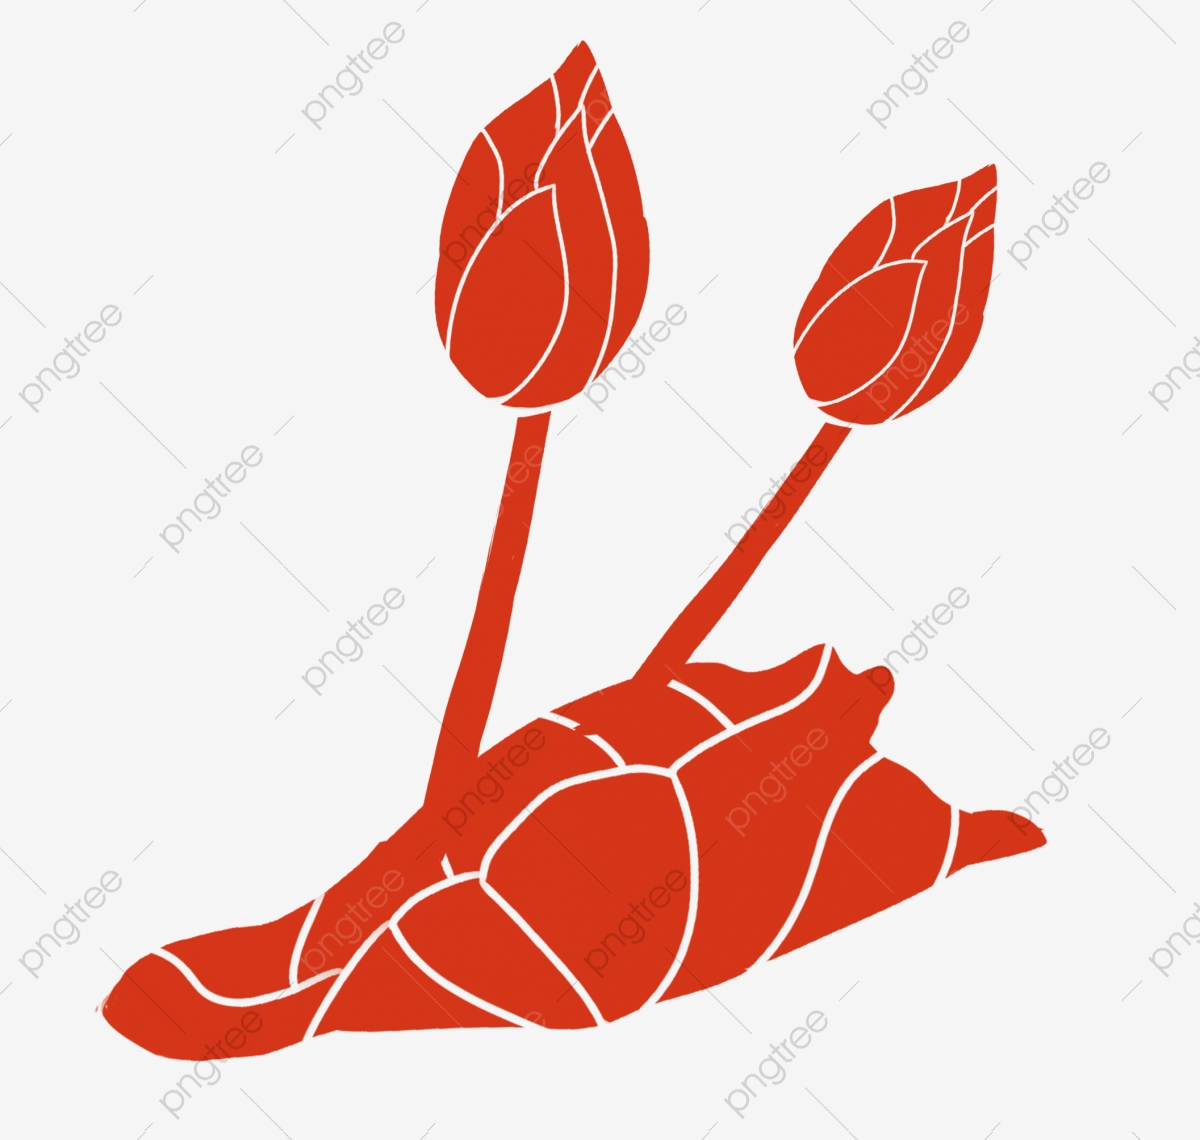 Lotus Flower Cartoon Plant Flowers Lotus Plants Png Transparent Clipart Image And Psd File For Free Download